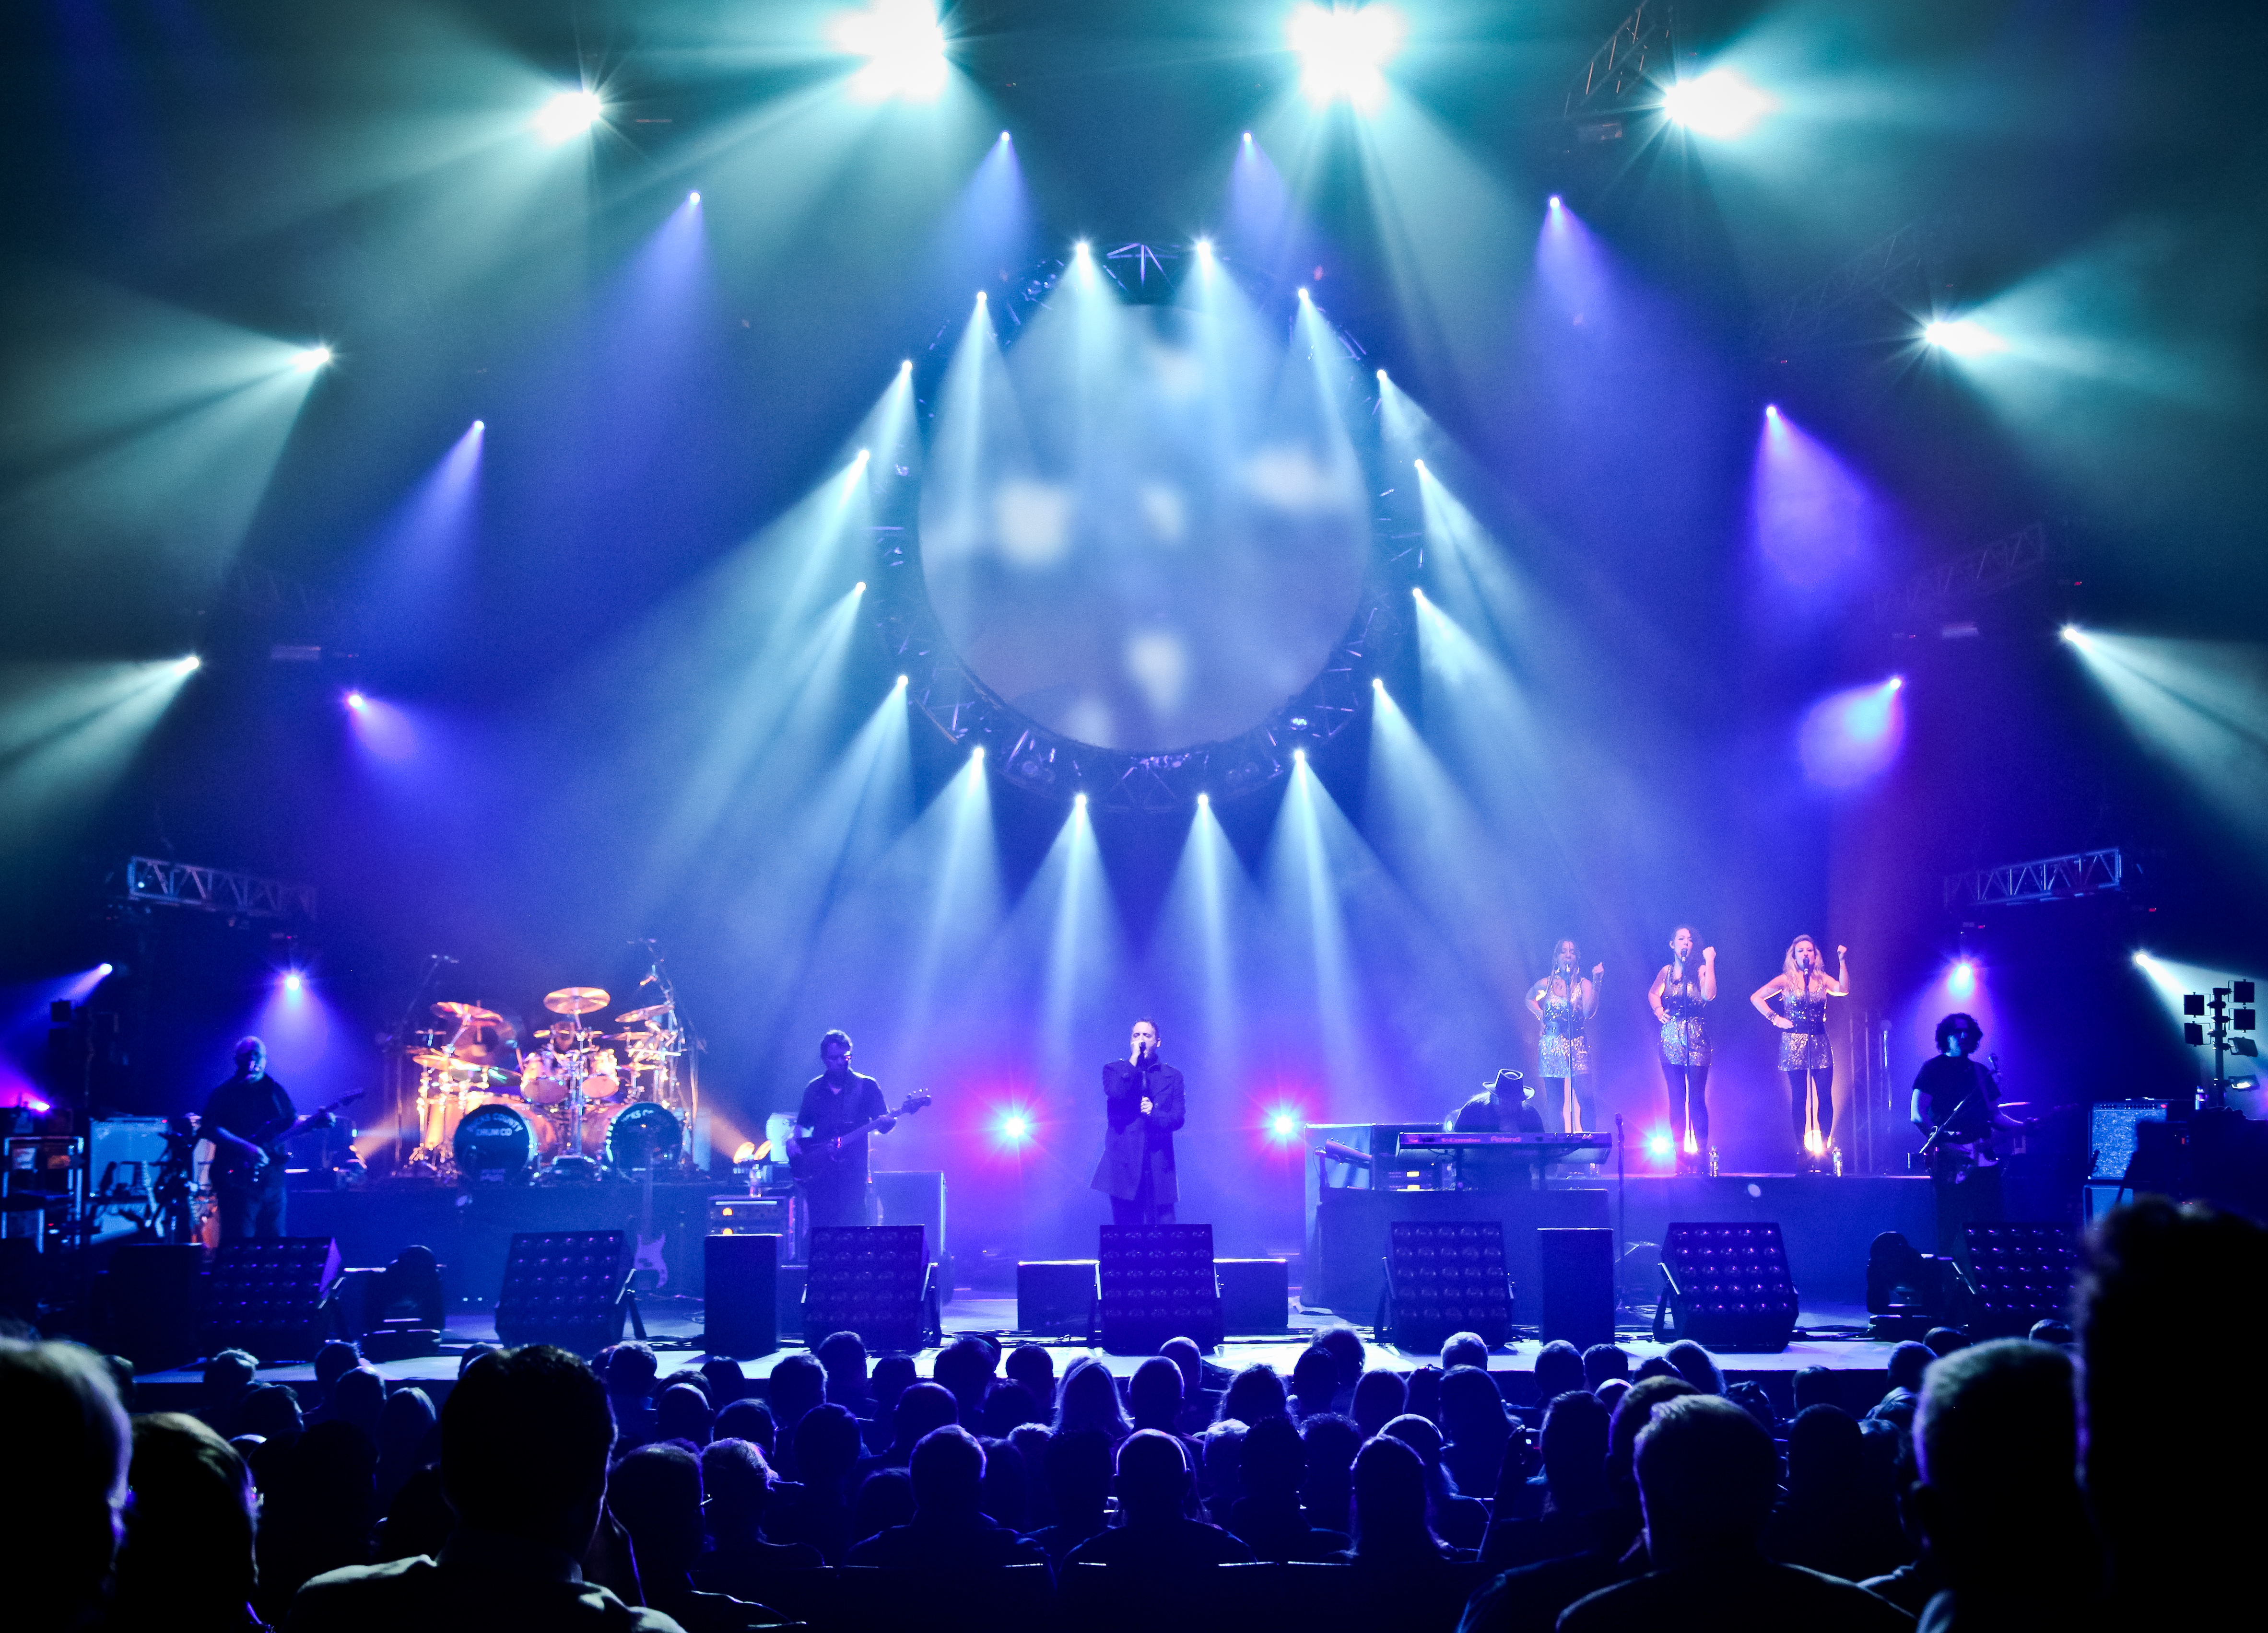 The australian pink floyd show at birmingham nia in 2015 for Pink floyd exhibition